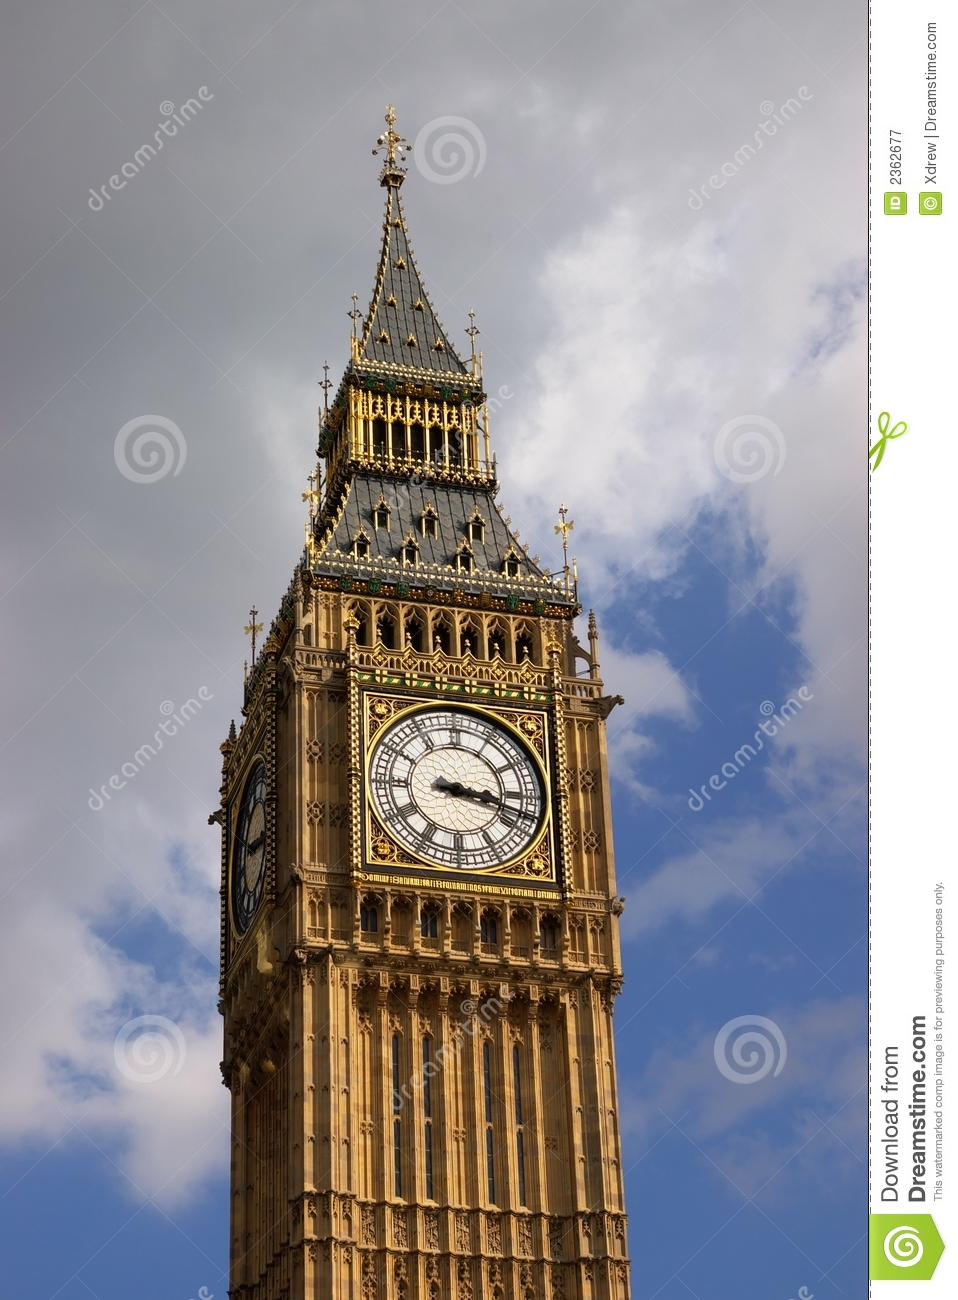 Coliseum moreover Royalty Free Stock Photography Big Ben Tower Top Image2362677 further File Ancient Roman relief carving of a midwife Well e M0003964 moreover File ISBN 81 7525 766 0 also Preschool And Kindergarten Addition With The Number Line. on roman number 4 vector